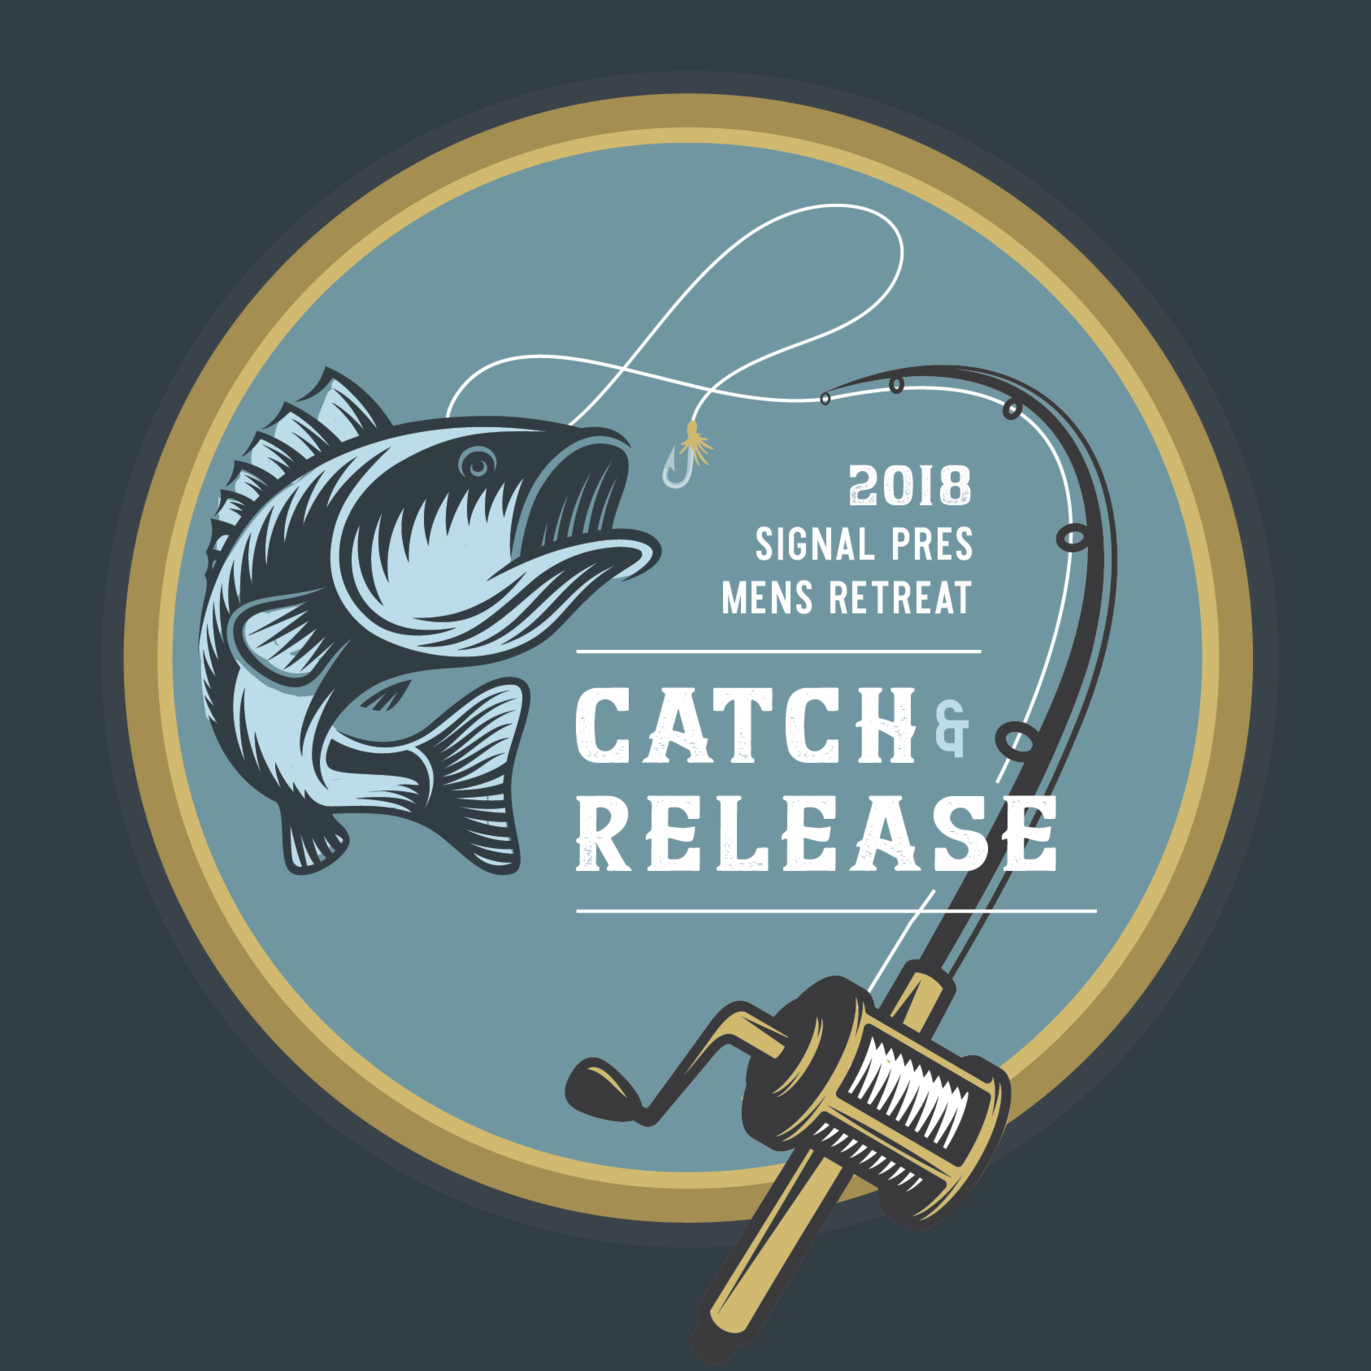 Fish and reel illustration by DGIM Studio, available for purchase here: https://creativemarket.com/DGIM-studio/1787589-Fishing-bundle